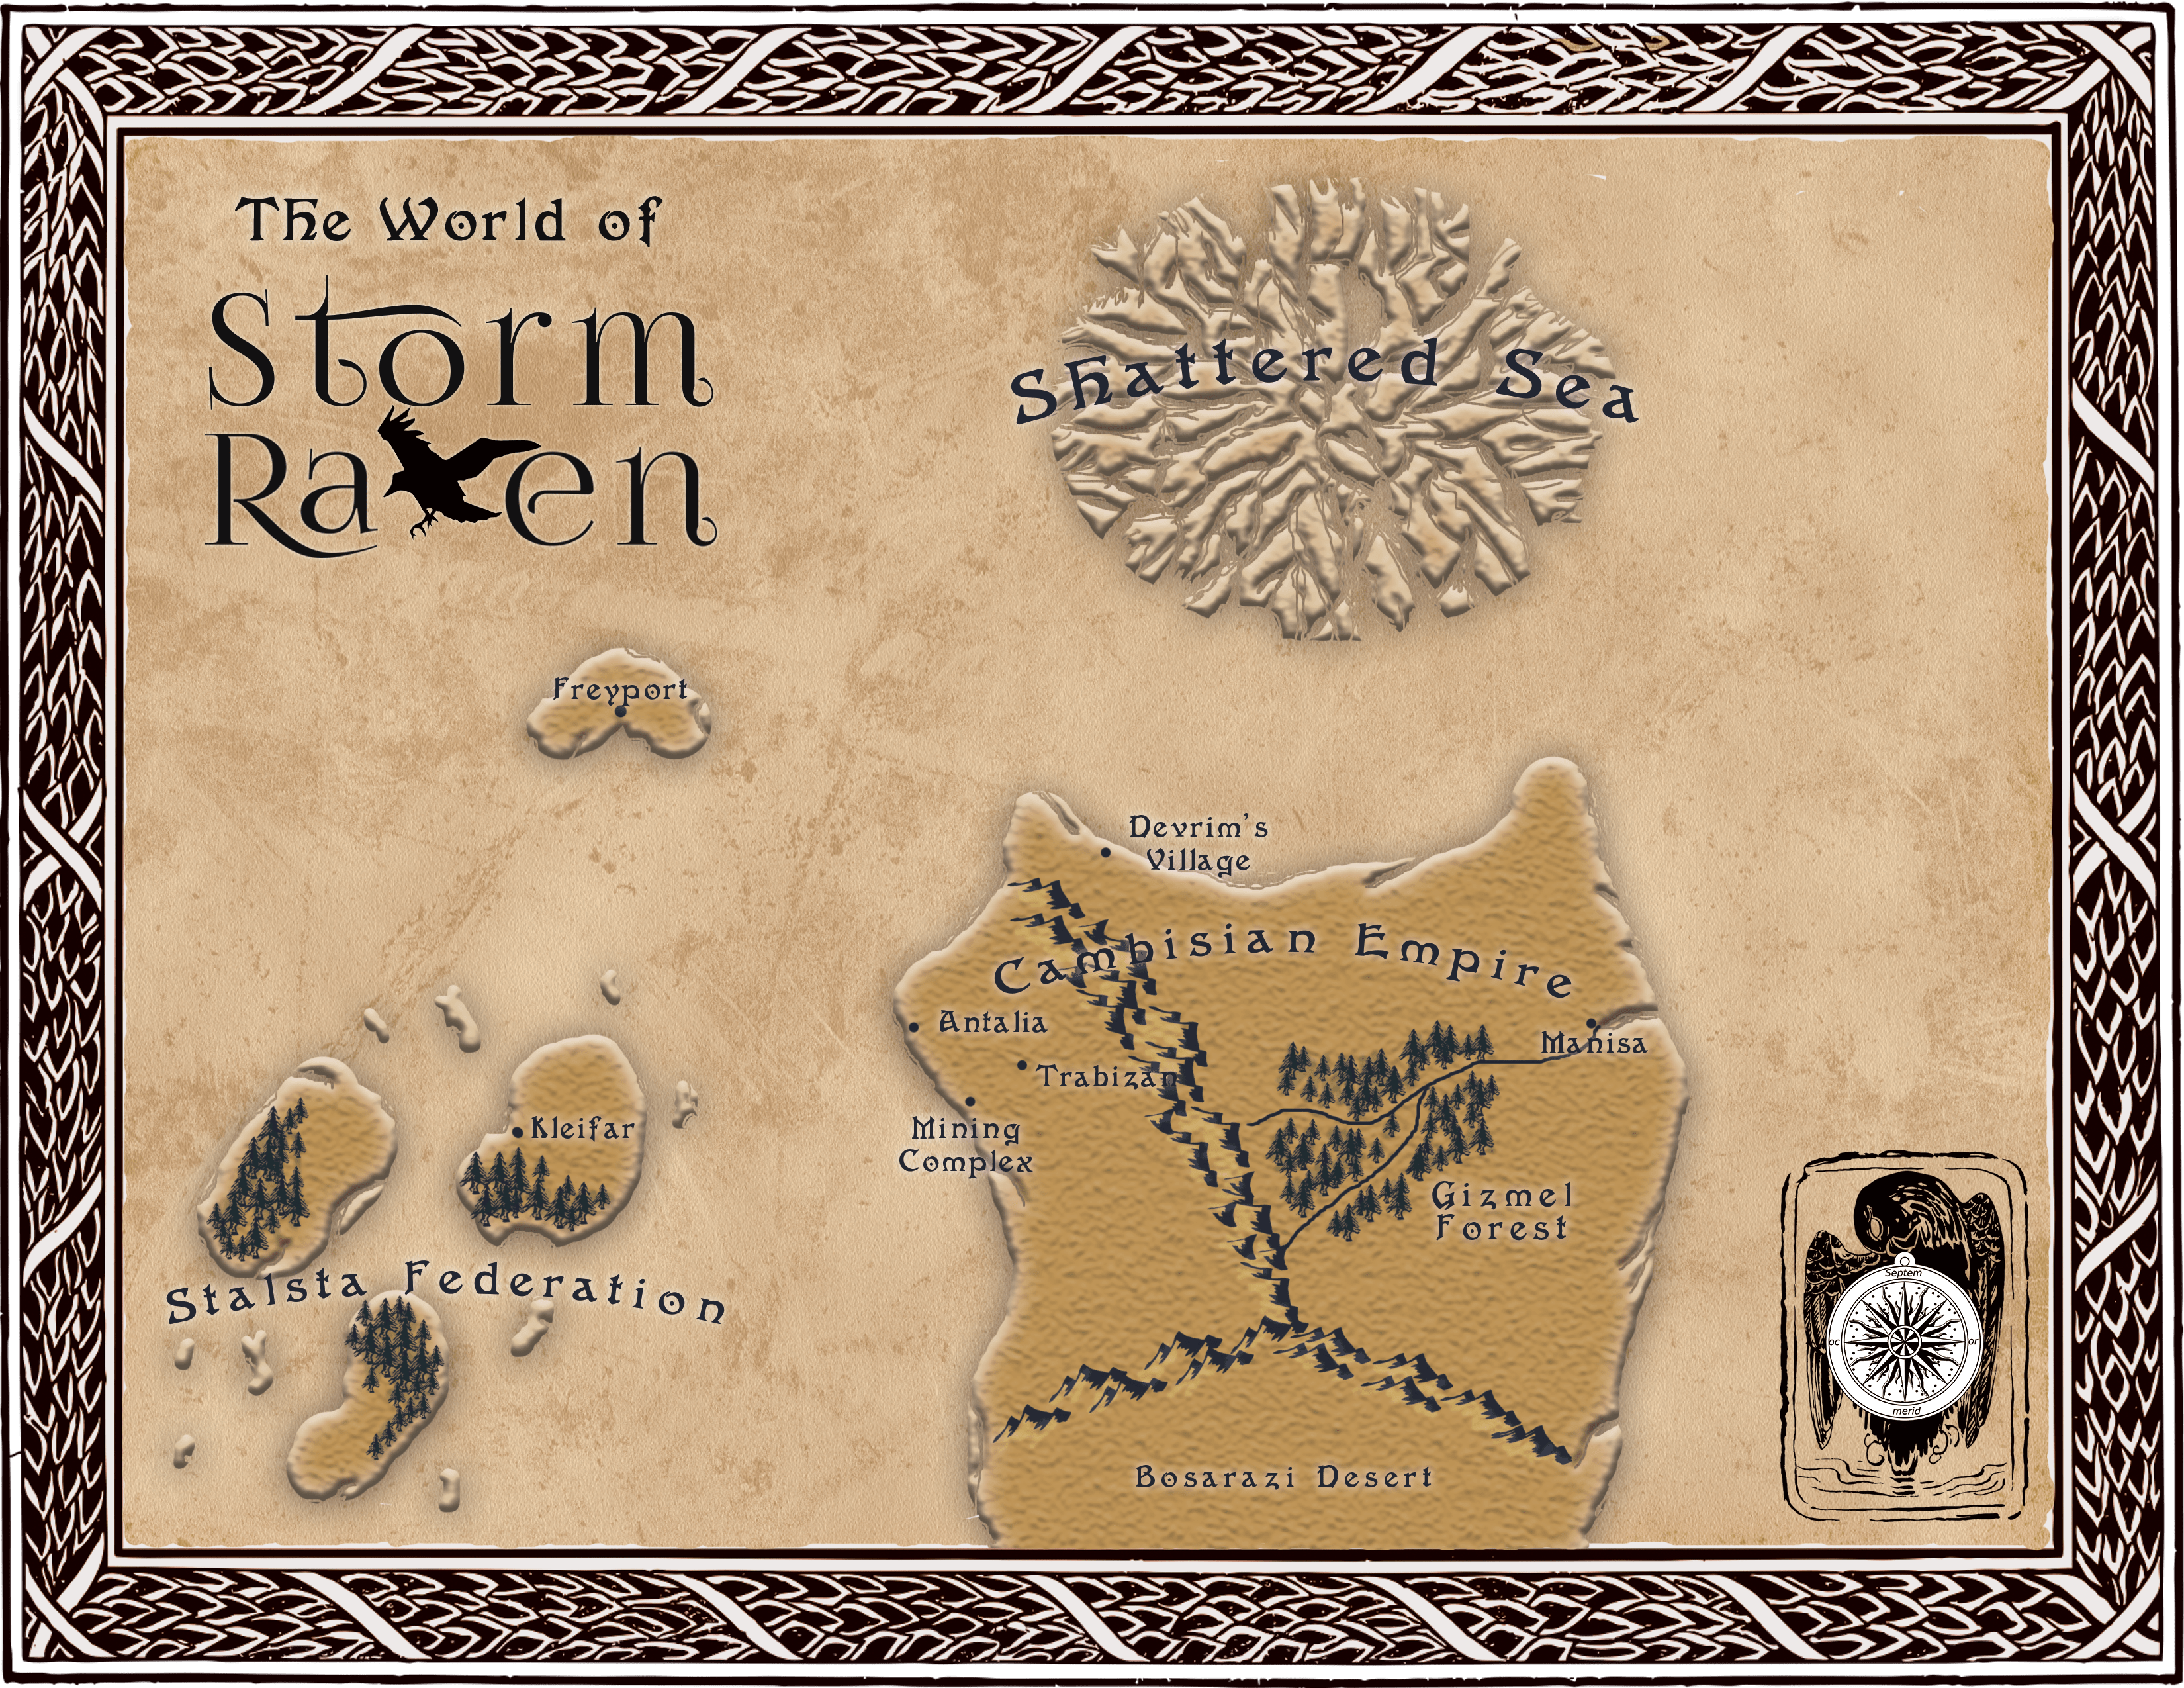 Exploring the world of storm raven freyport k hanson books as the release date of storm raven approaches im launching a series of short posts on various parts of the world in which the book takes place gumiabroncs Choice Image